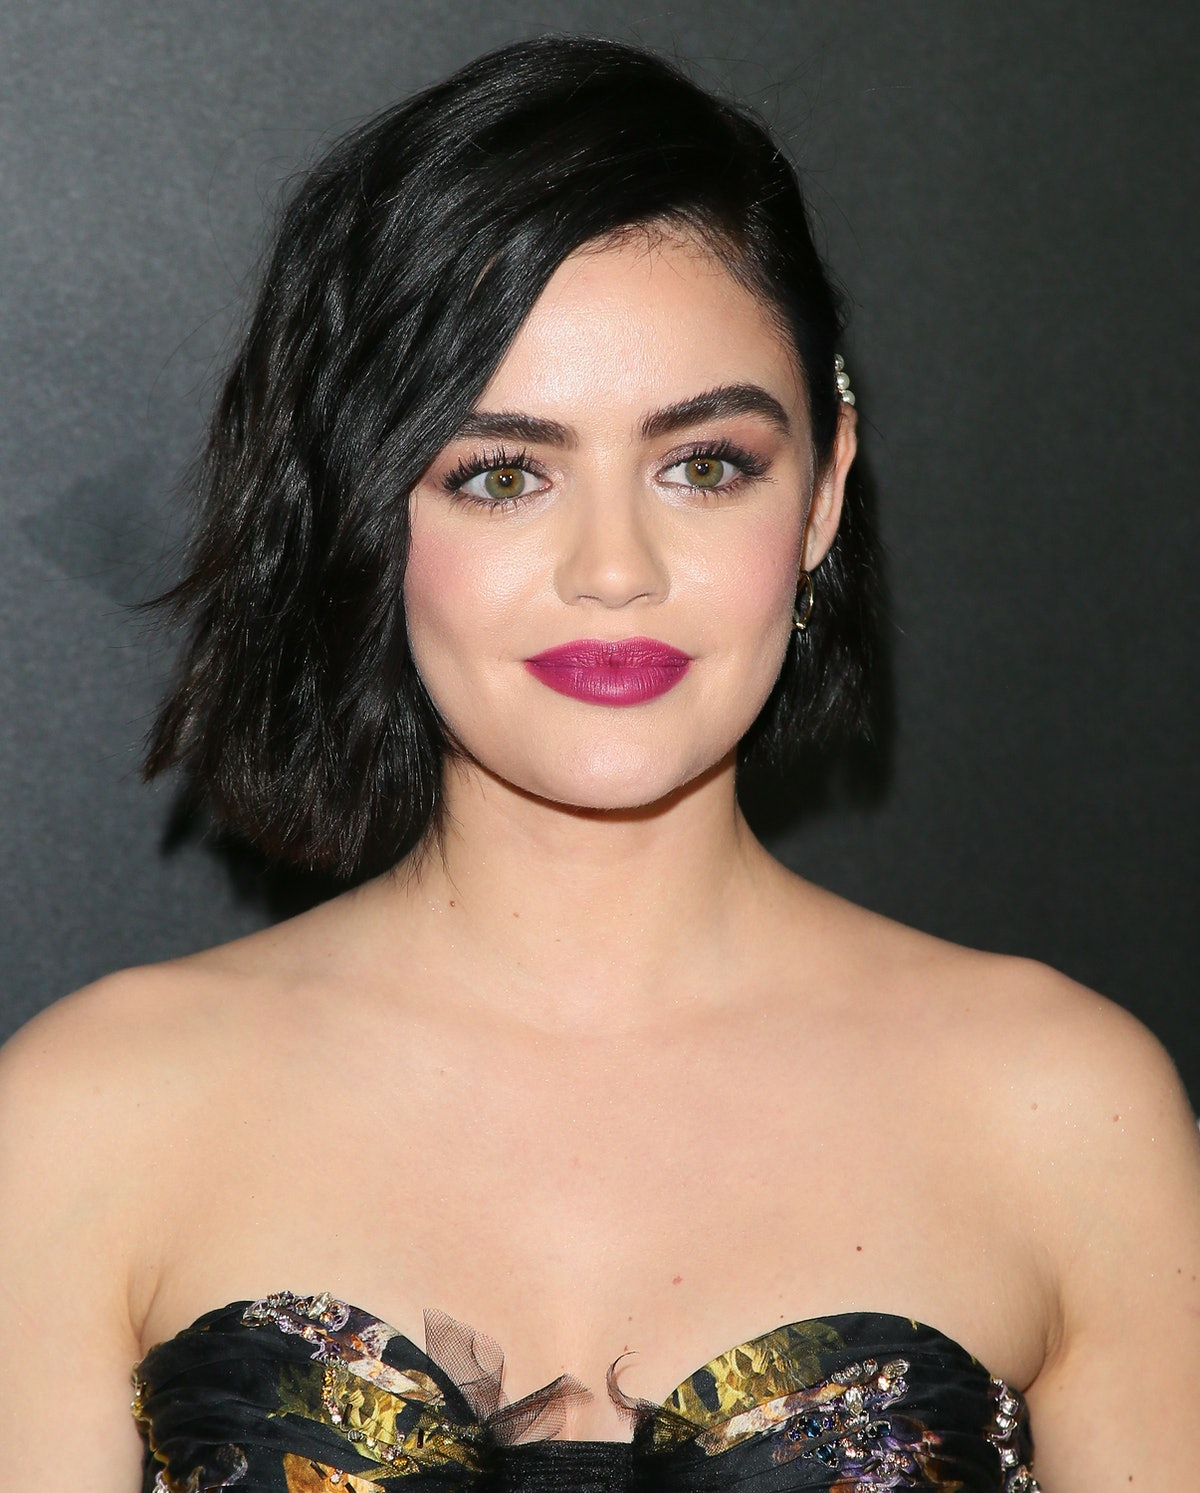 Lucy Hale has a tattoo for her dog.